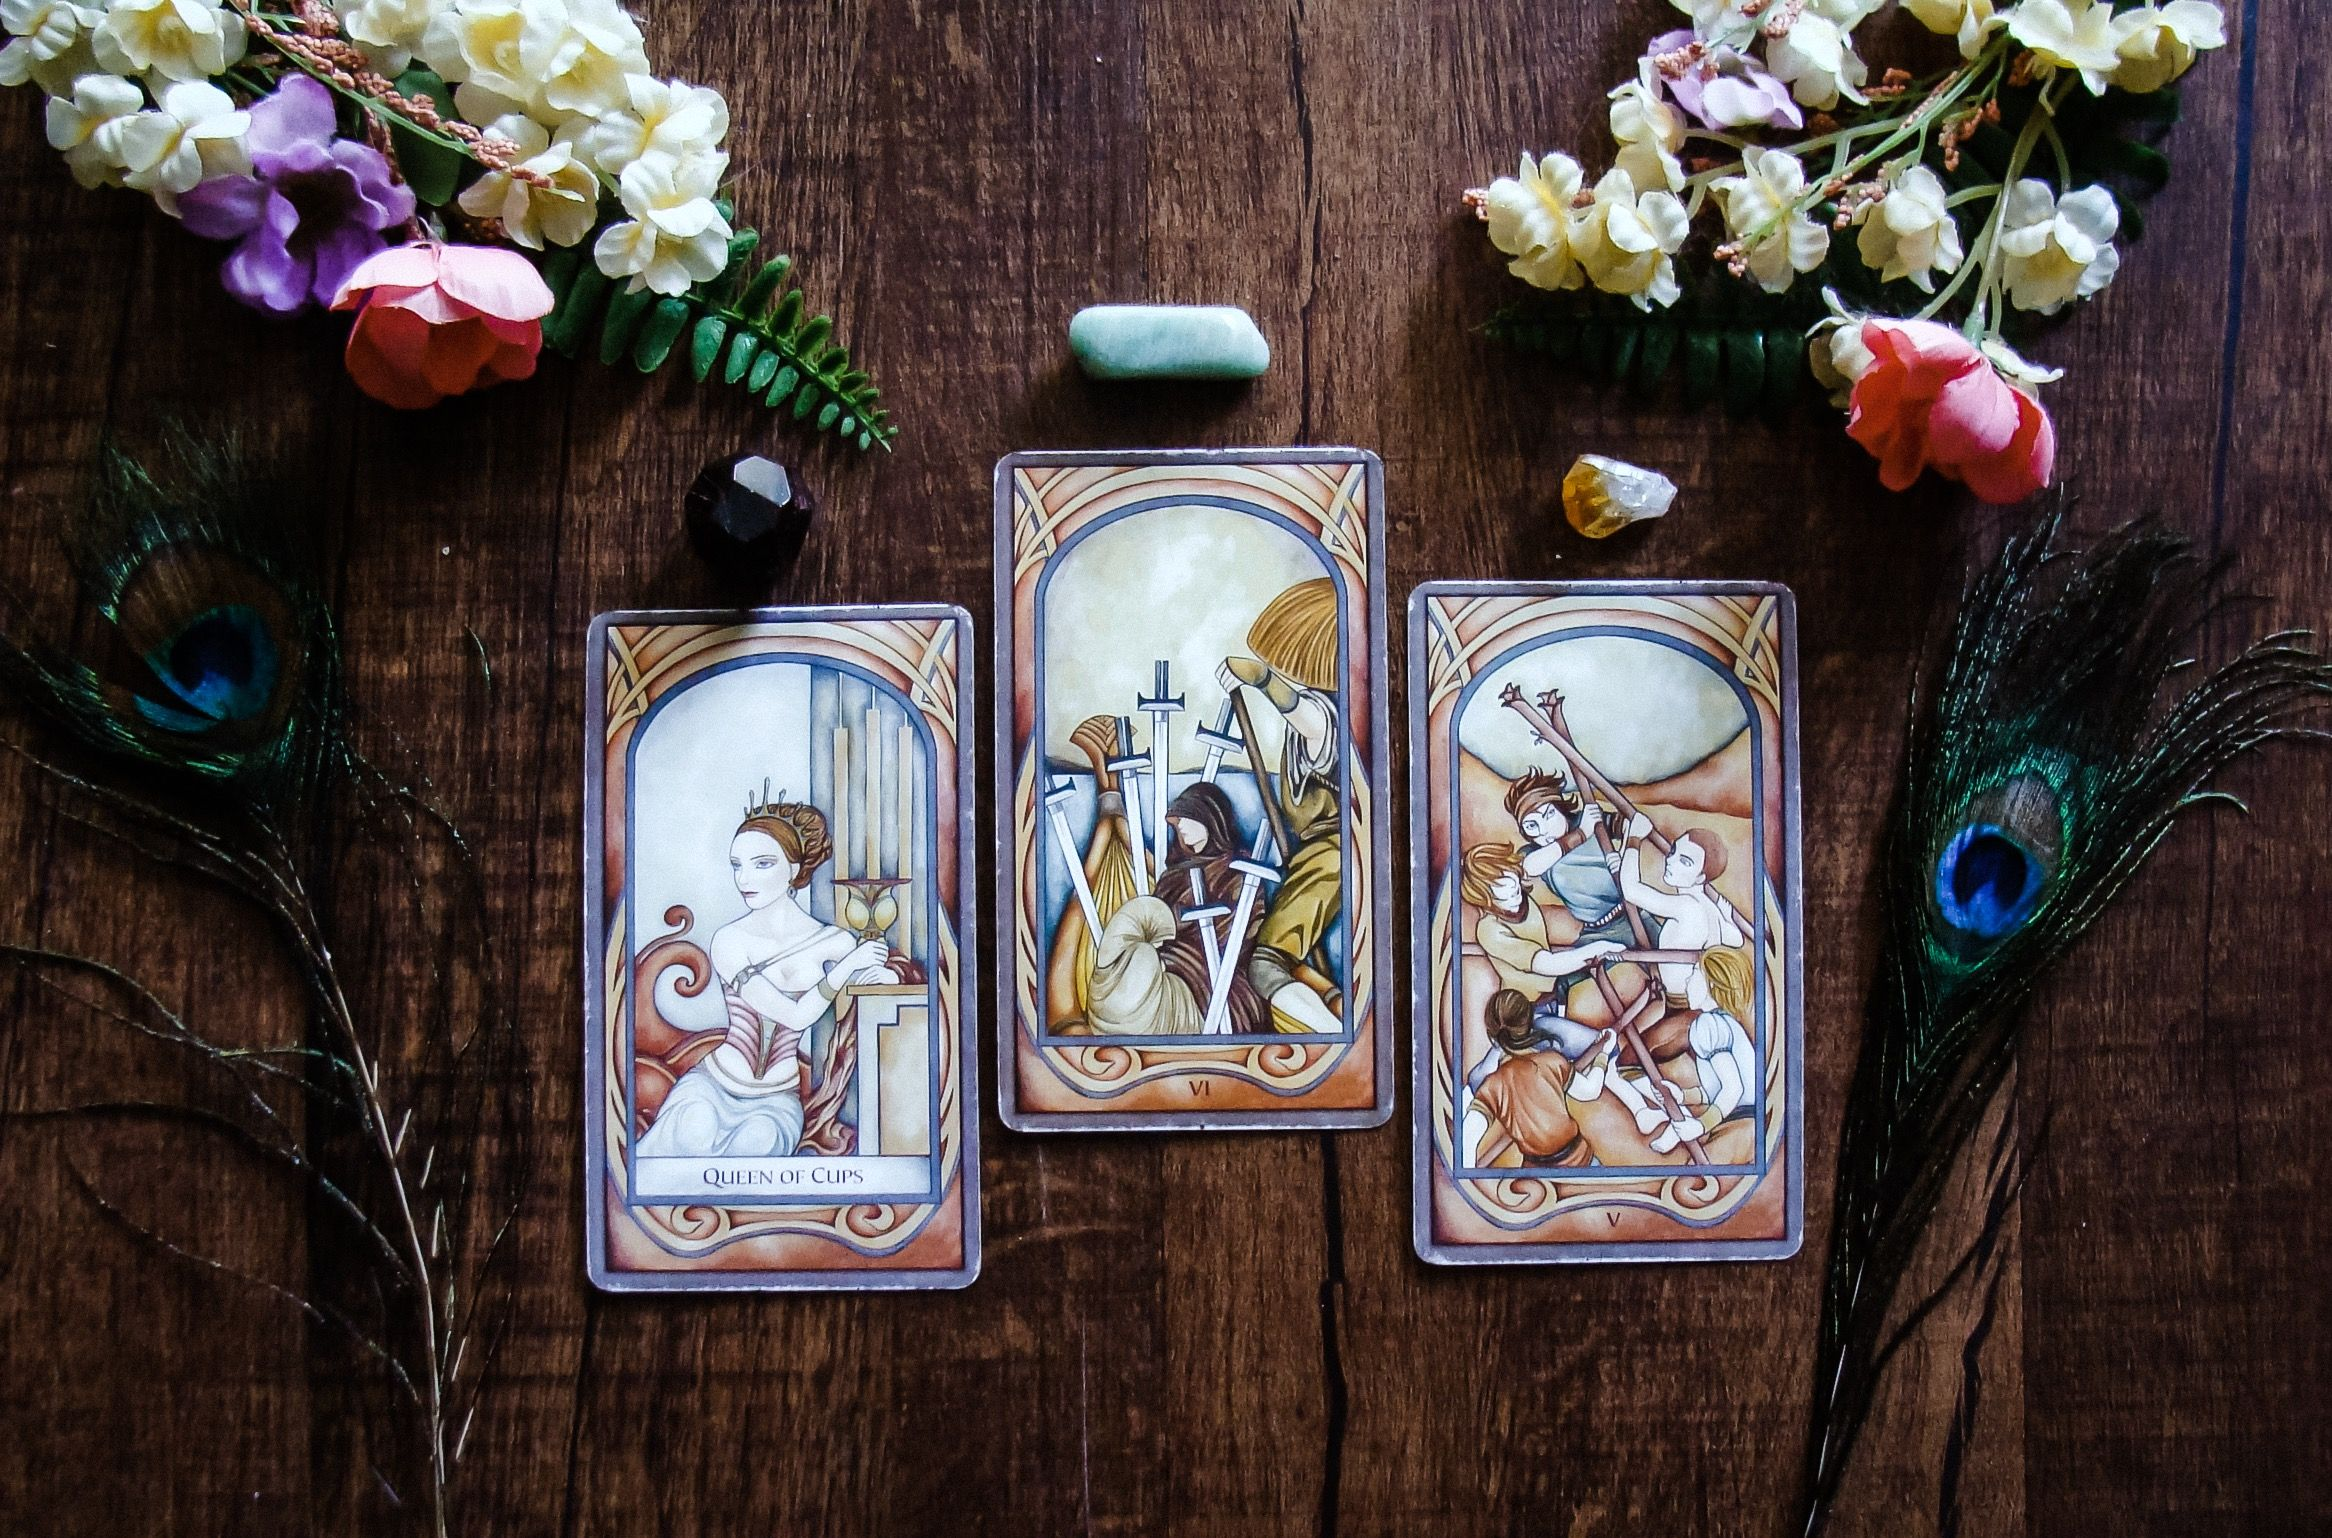 How do they feel about me love tarot reading love tarot